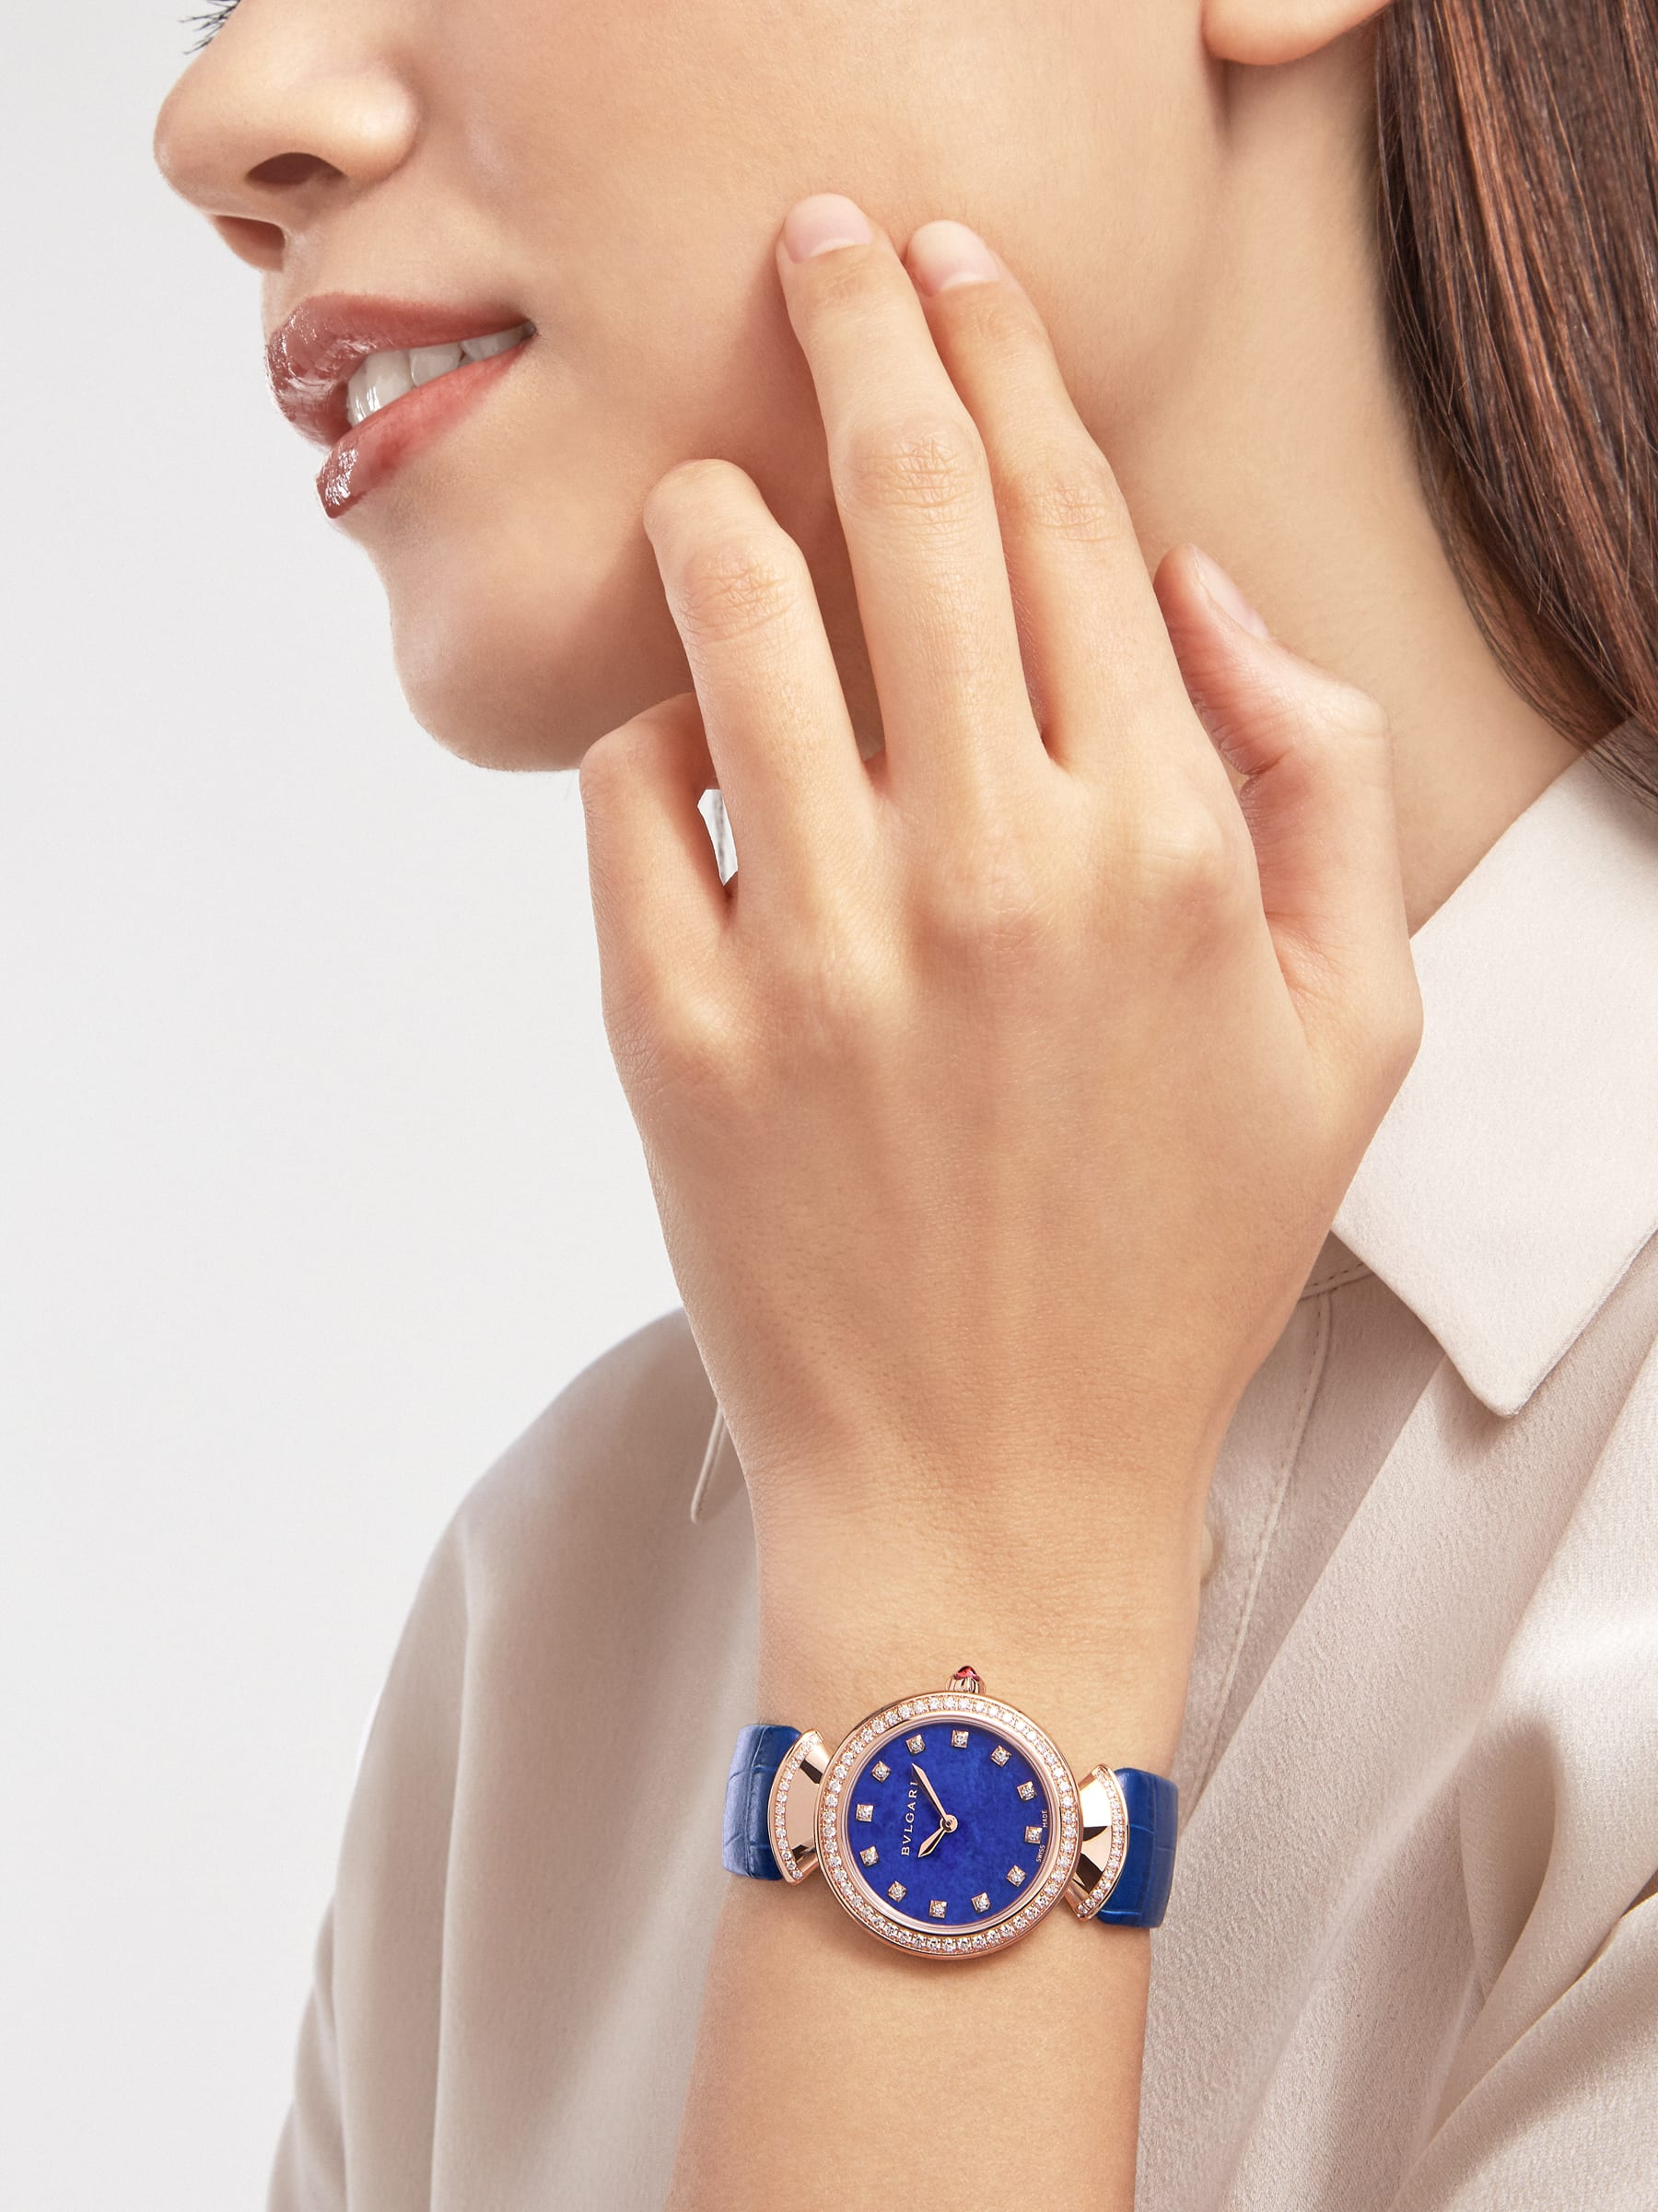 DIVAS' DREAM watch with 18 kt rose gold case, 18 kt rose gold bezel and fan-shaped links both set with round brilliant-cut diamonds, lapis lazuli dial, diamond indexes and blue alligator bracelet 103261 image 1